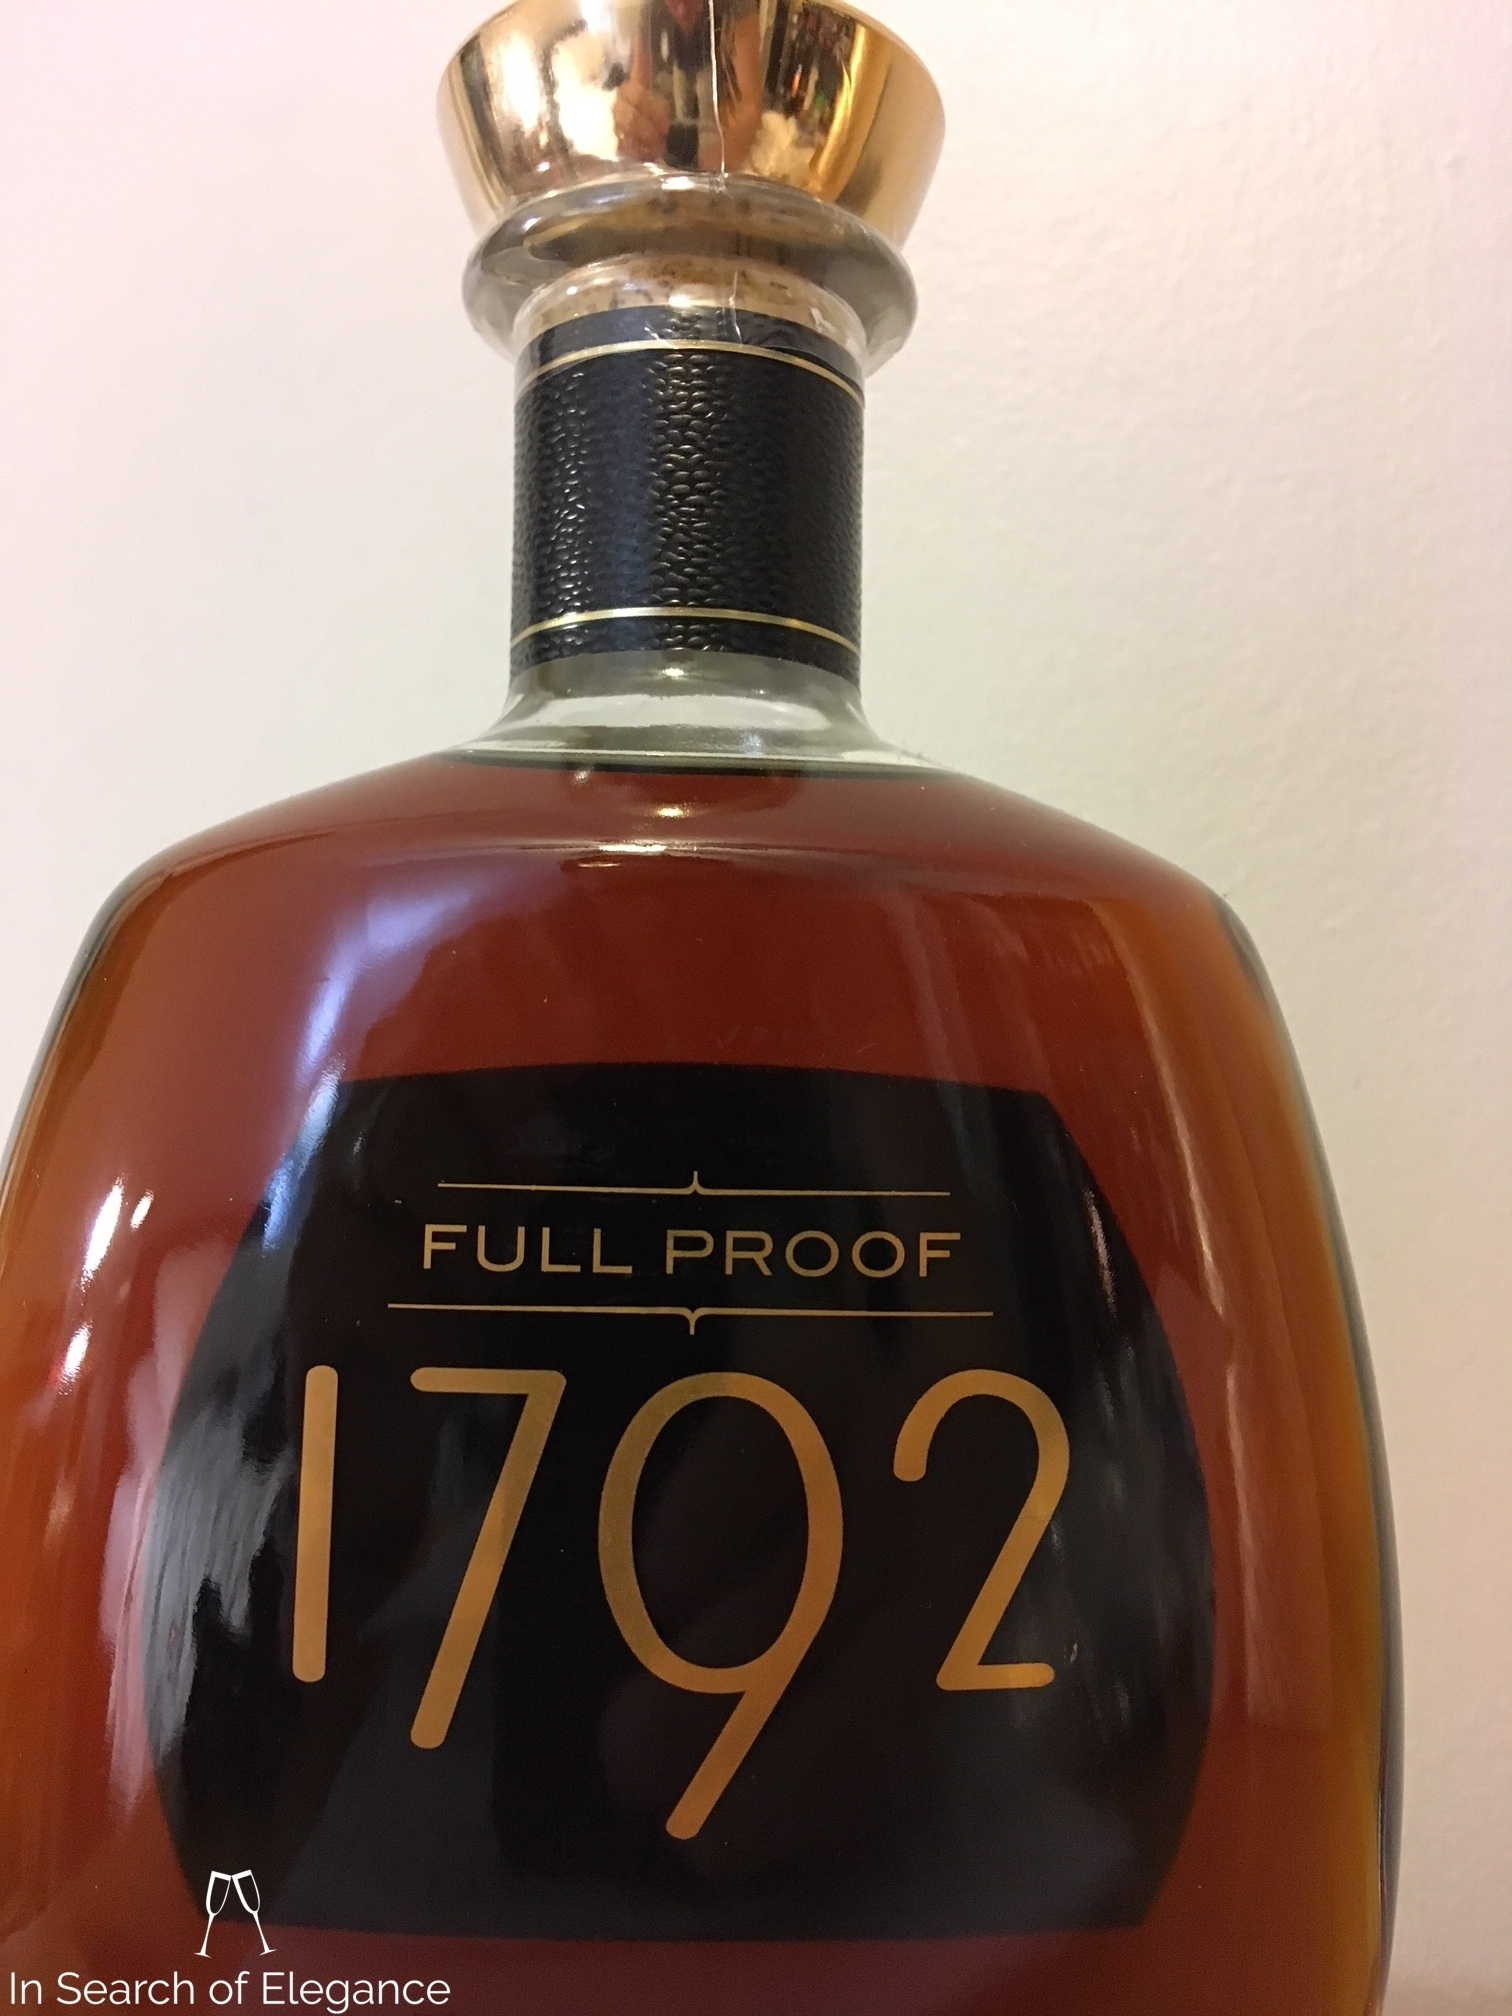 1792 Full Proof.jpg